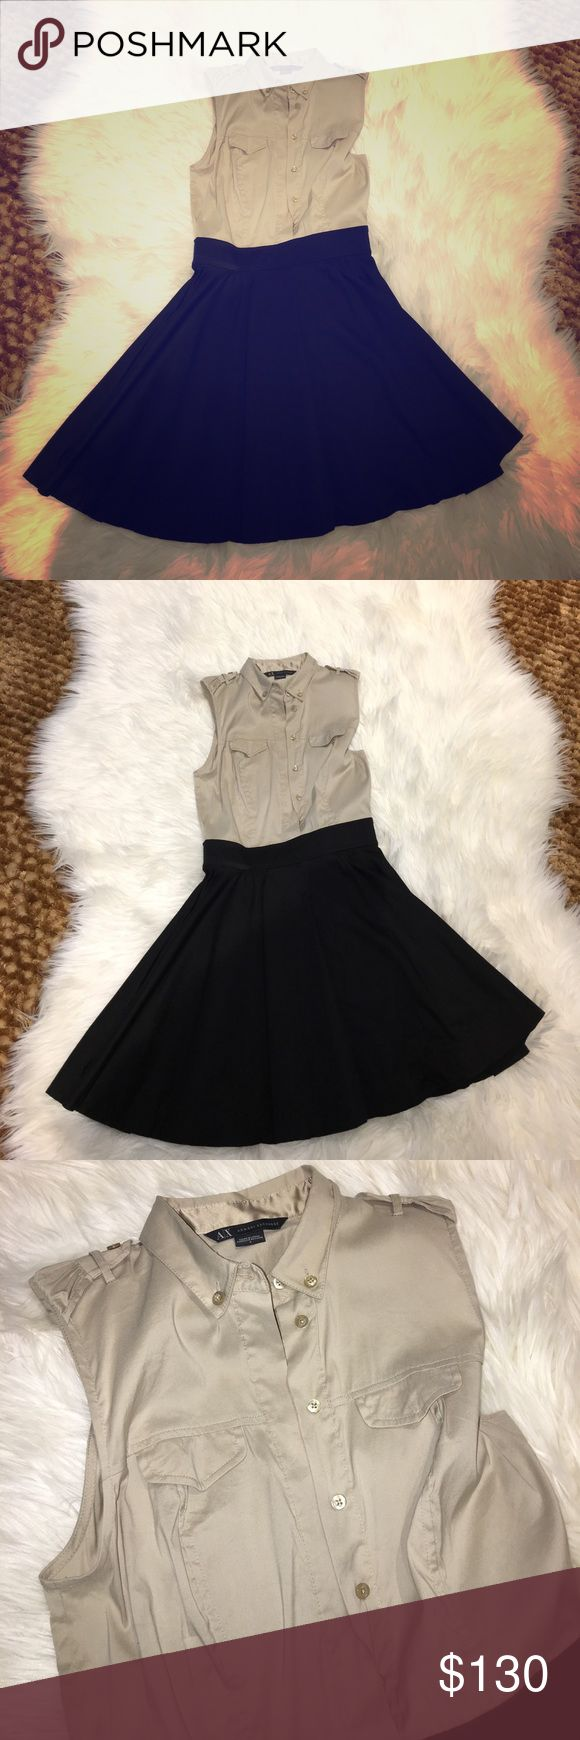 New Office dress Beautiful dress  Looks professional Can be worn out during the day and night Buttons up Zips up from the side Flared look on bottom skirt New Never Worn  ❌No Trades A/X Armani Exchange Dresses Midi